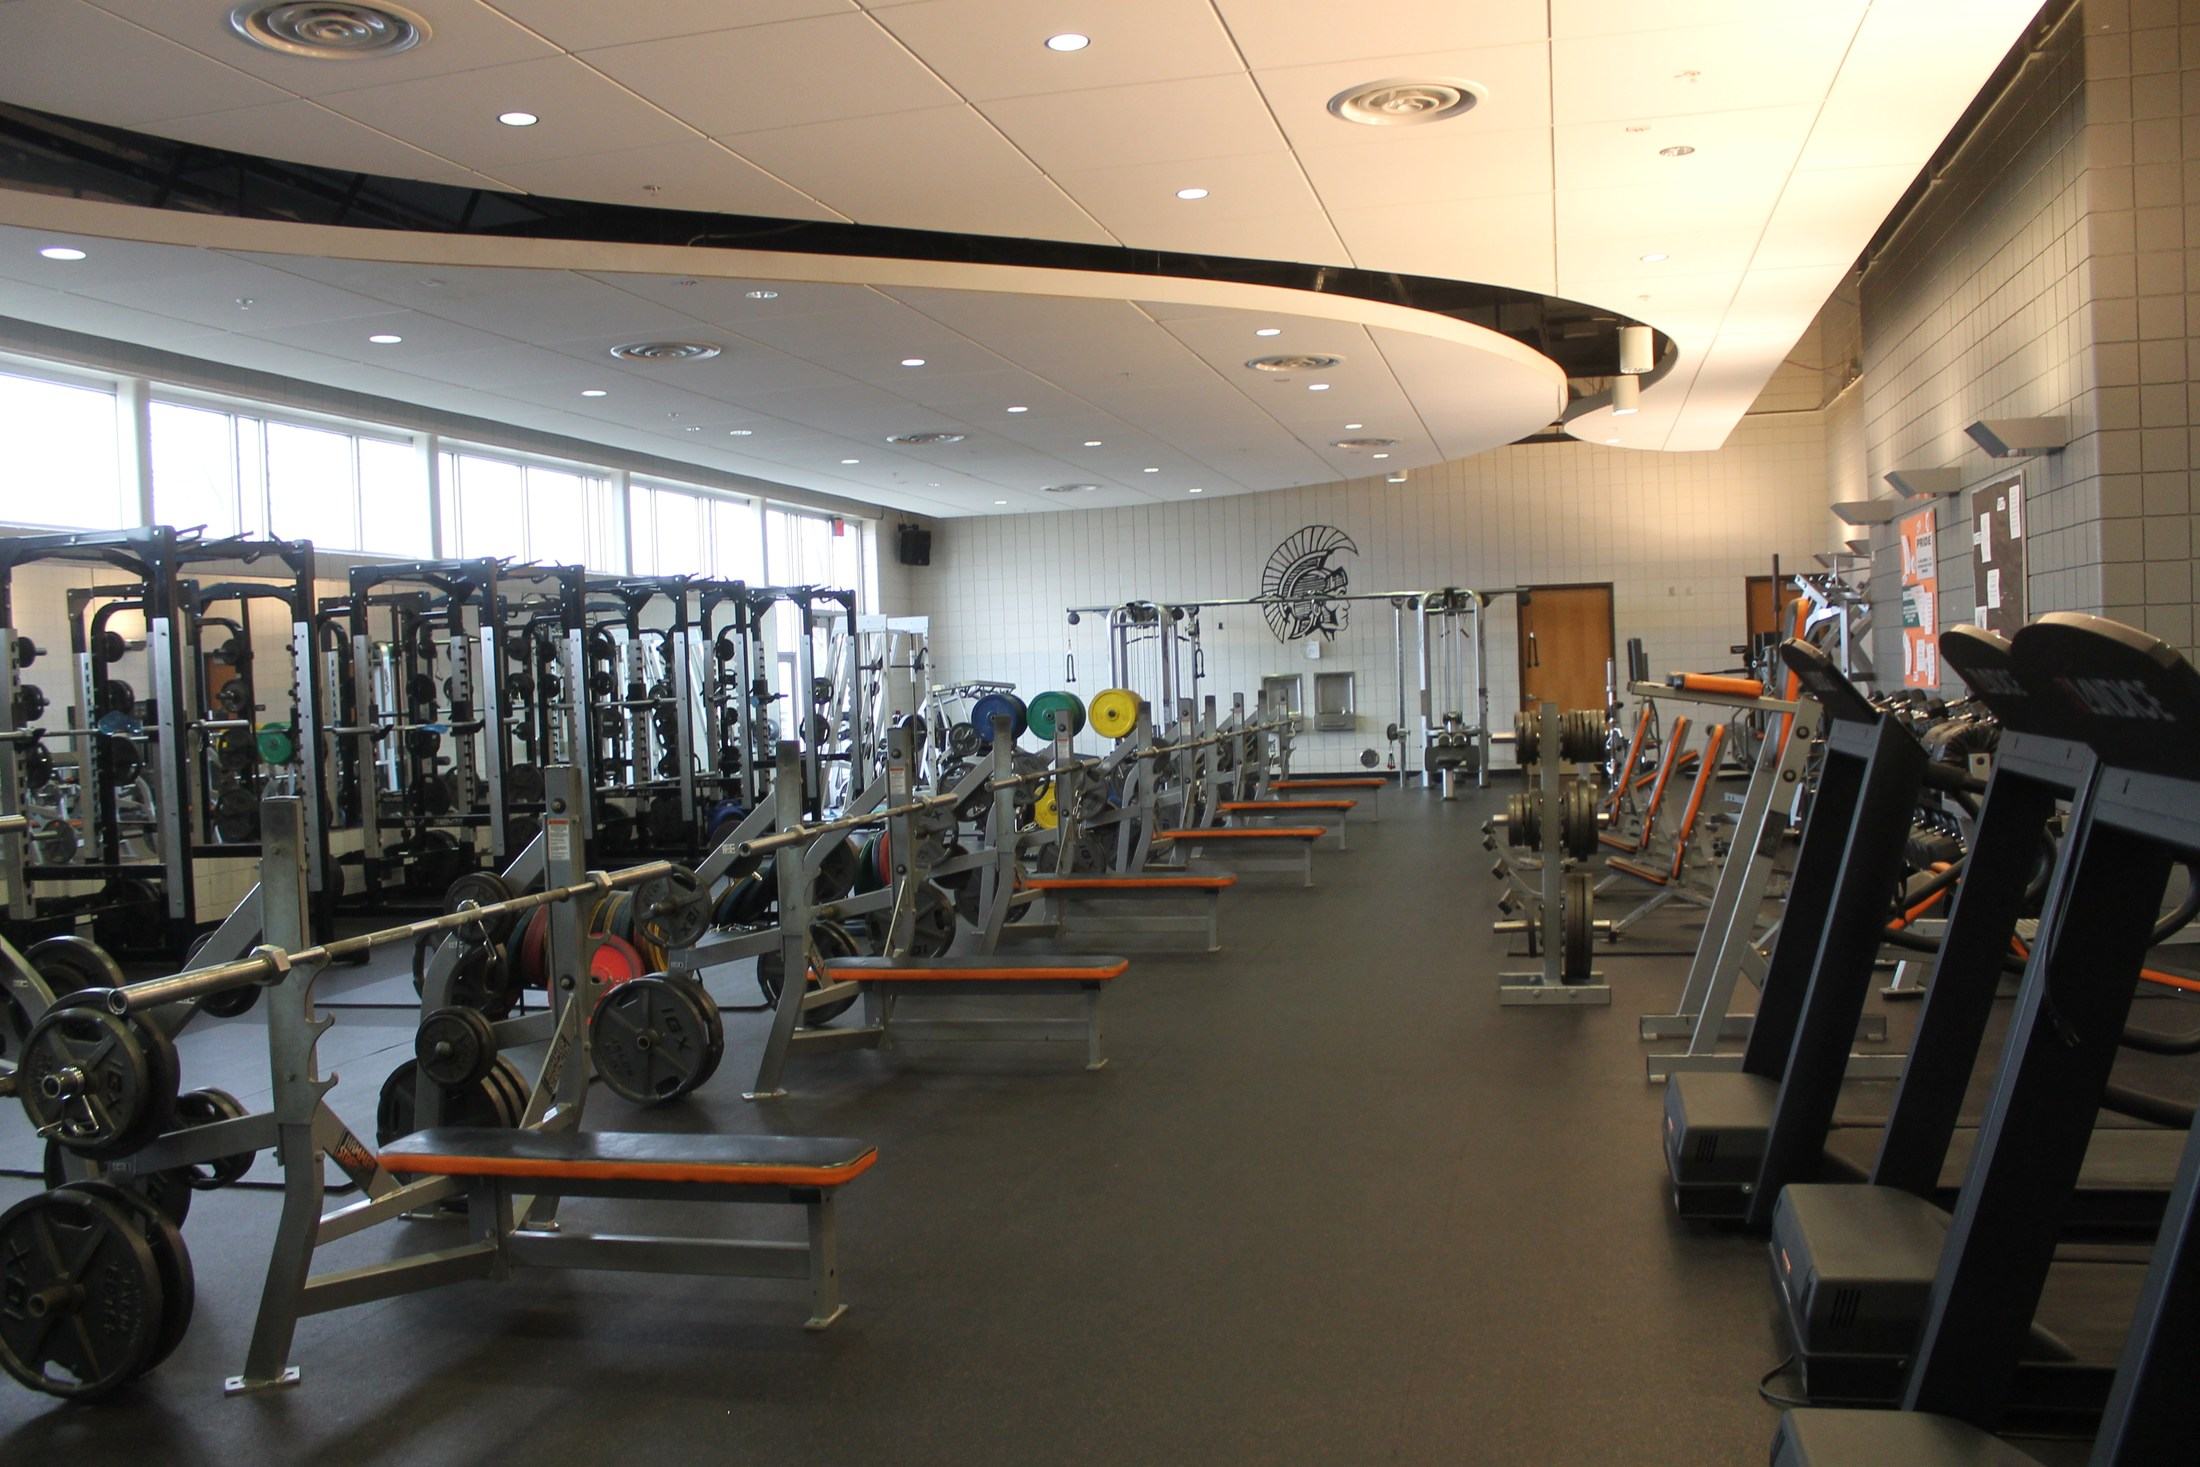 The high school and community fitness center has state-of-the-art equipment.